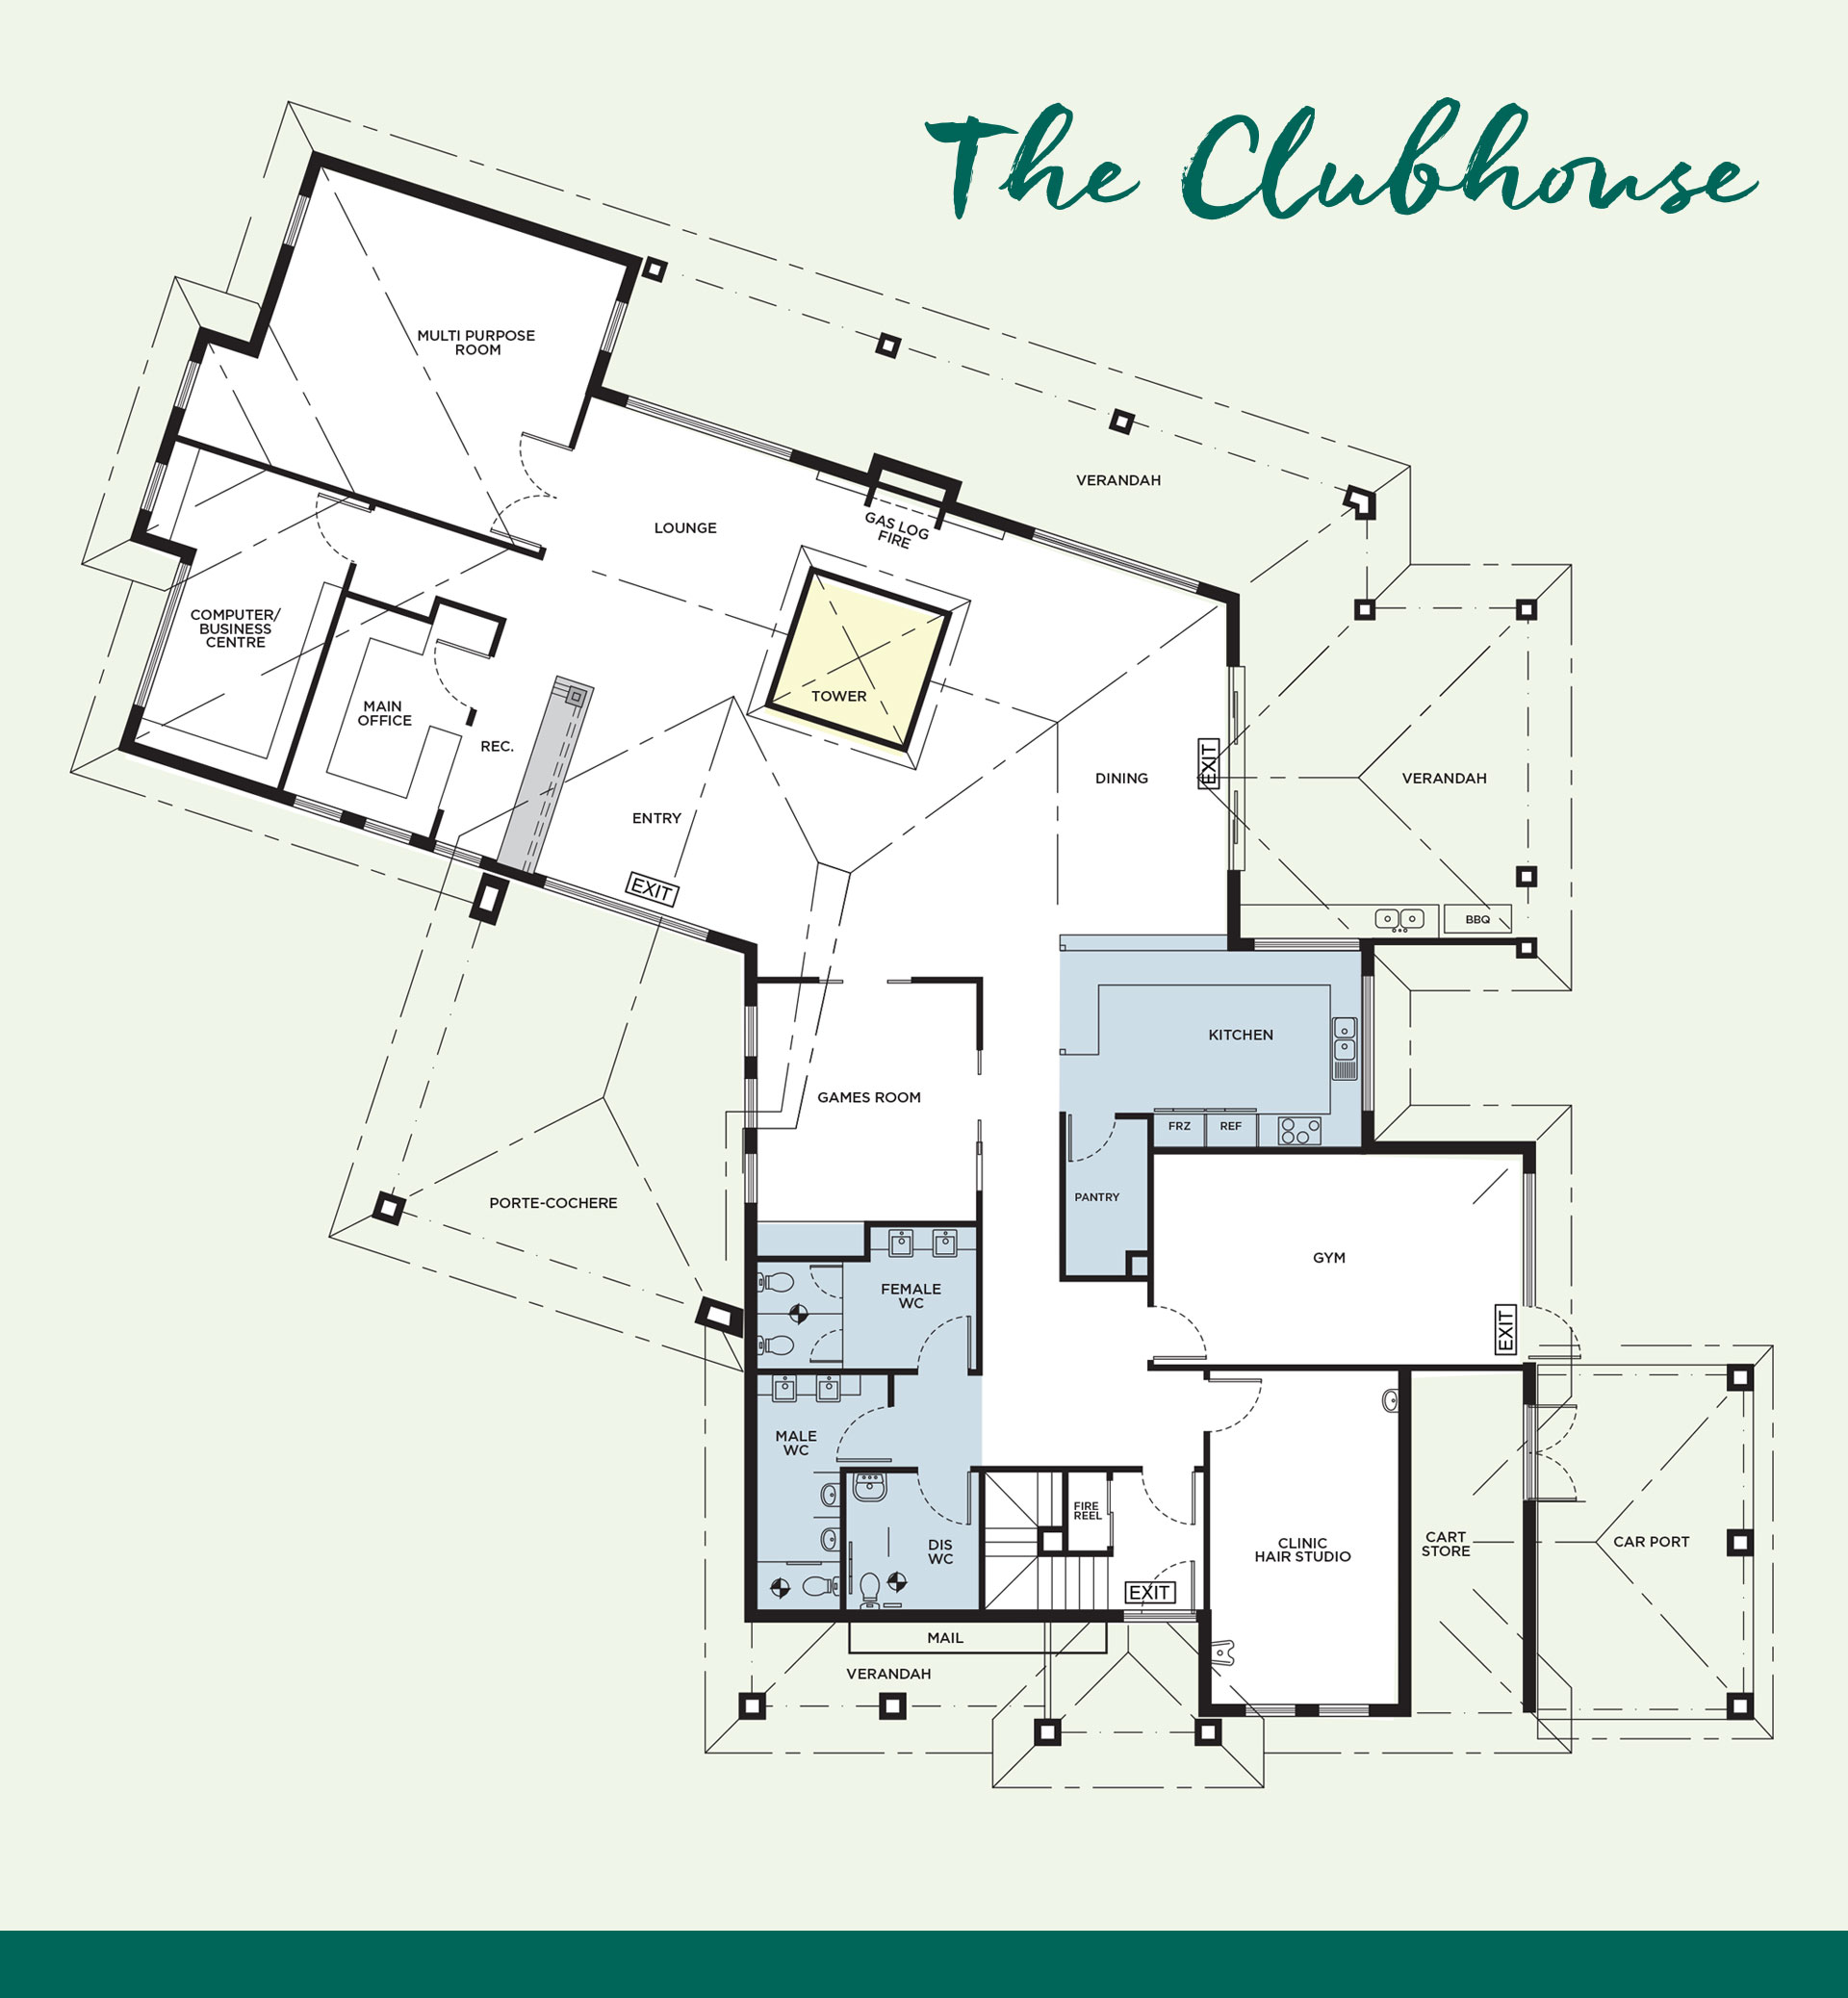 Club house 1920 pix floor plan master peninsula for Home design layout plan